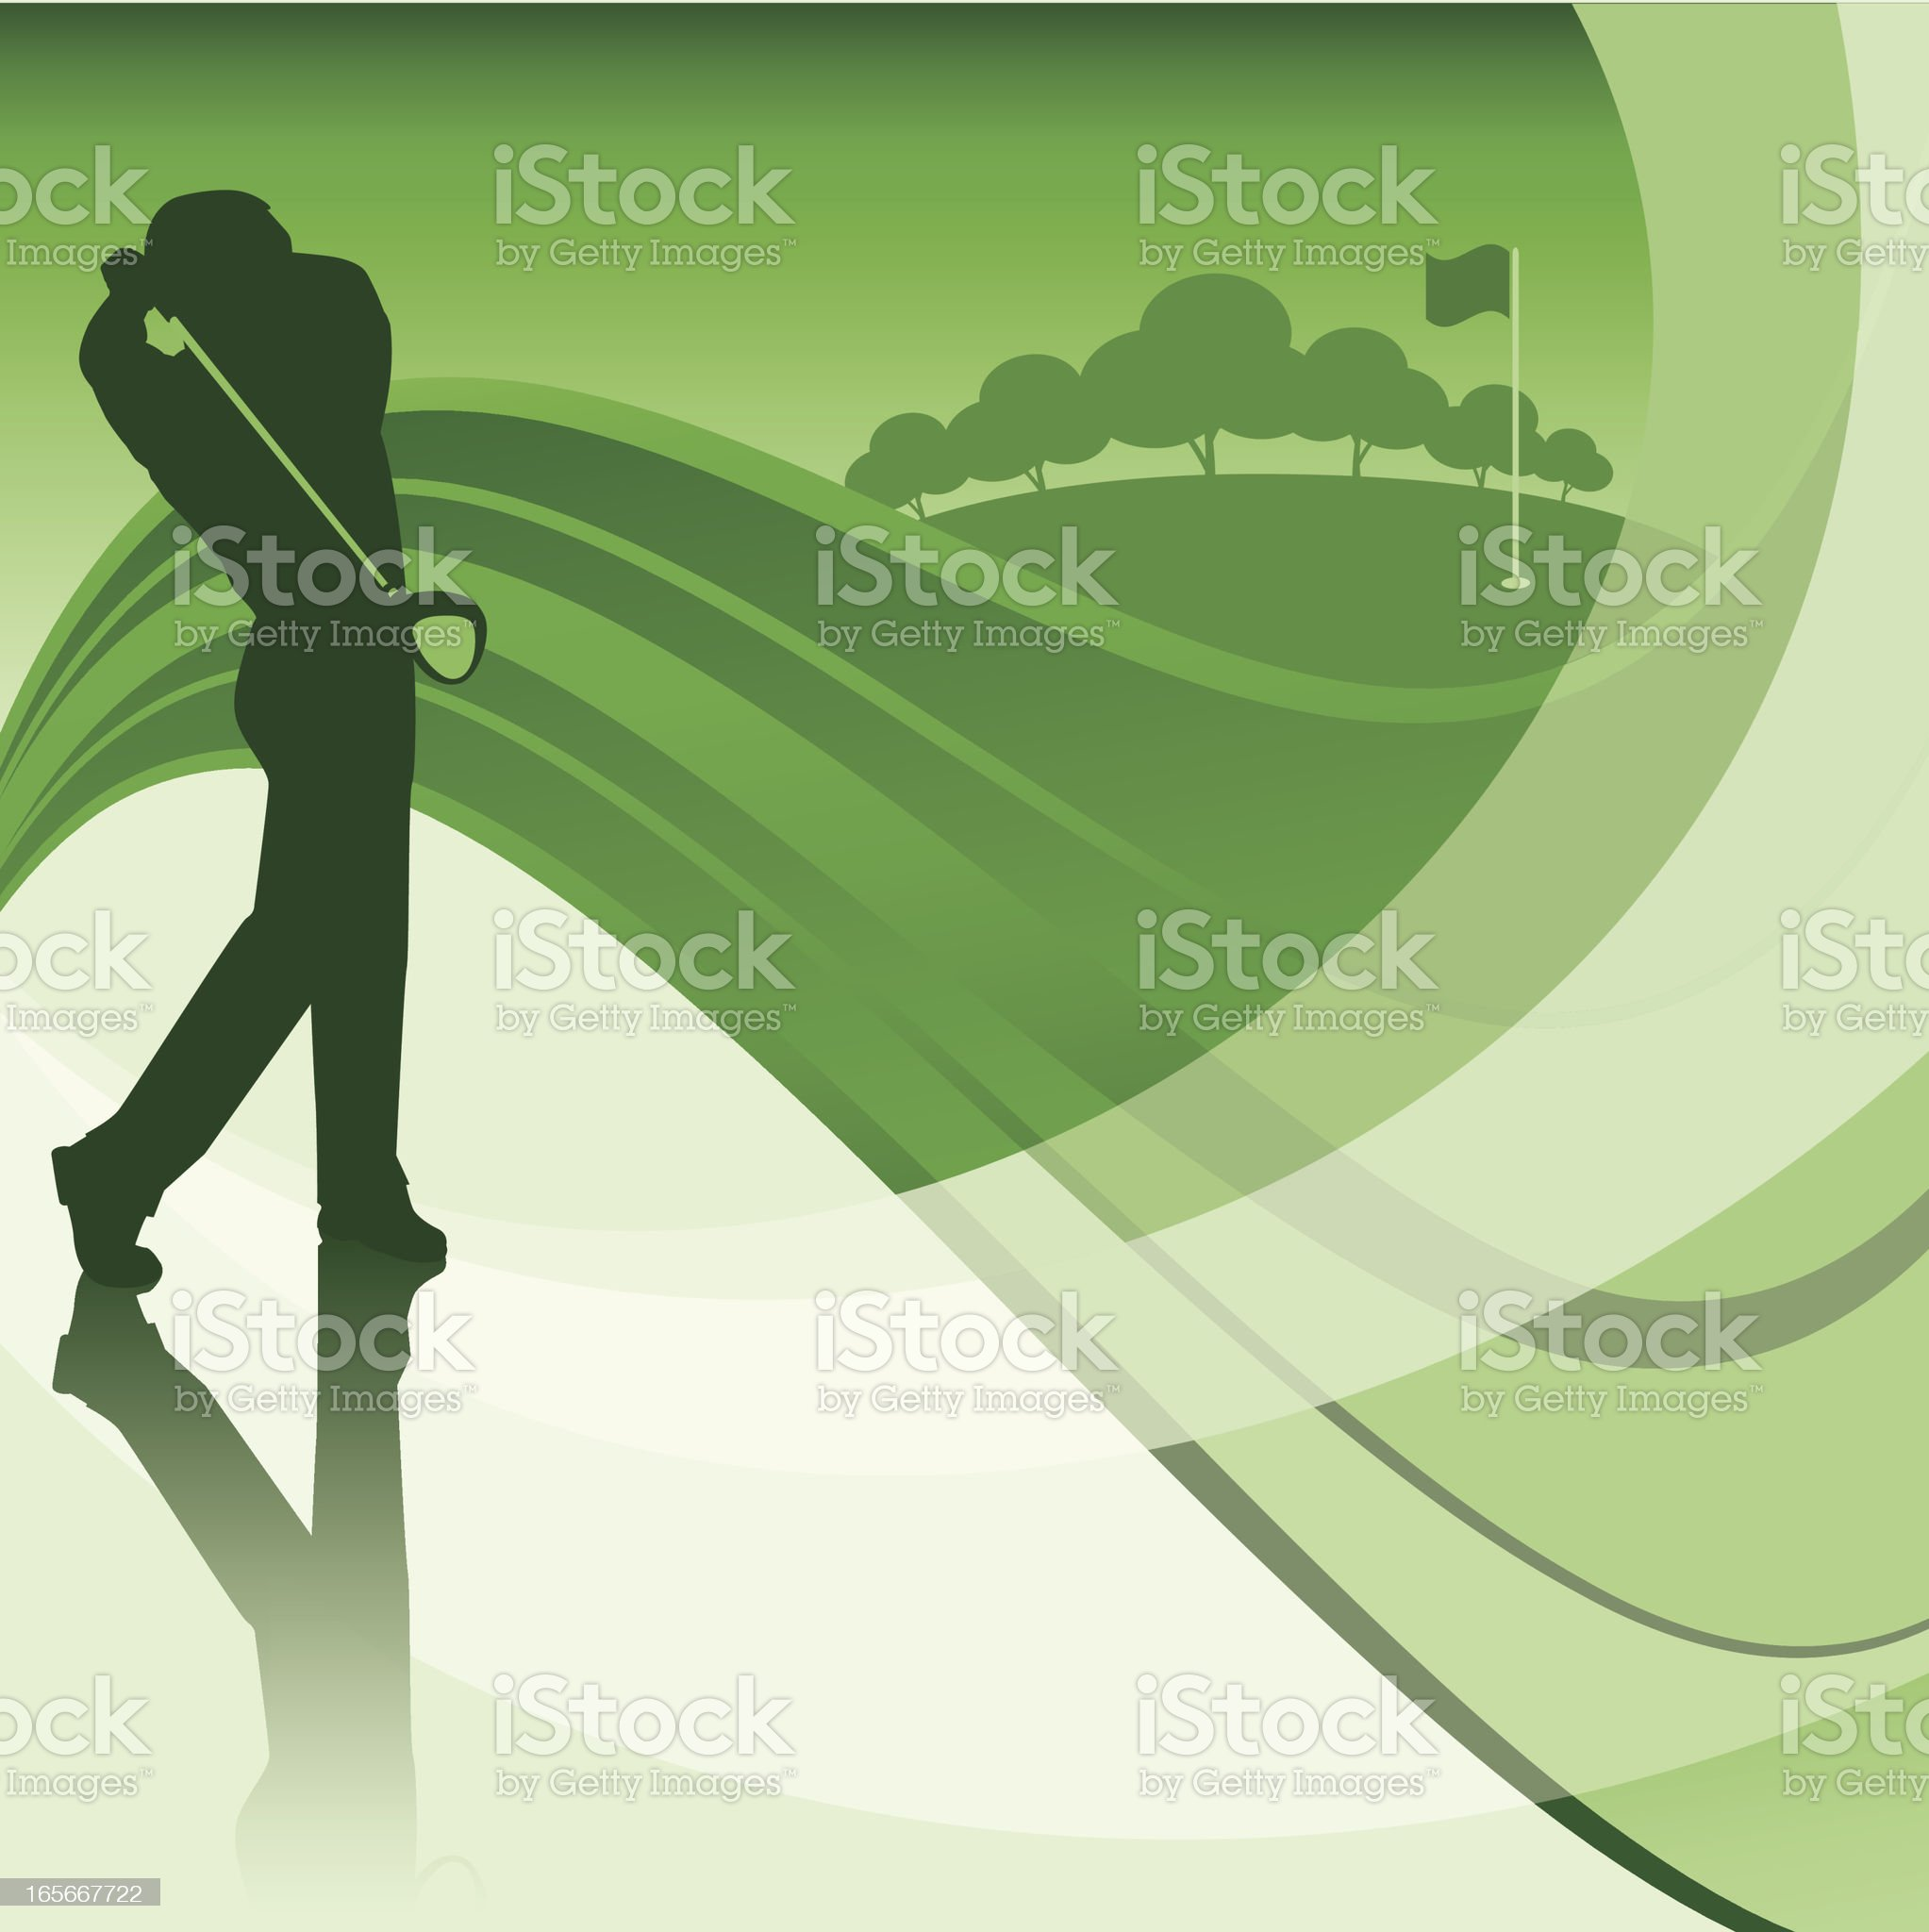 golfer swinging background royalty-free stock vector art